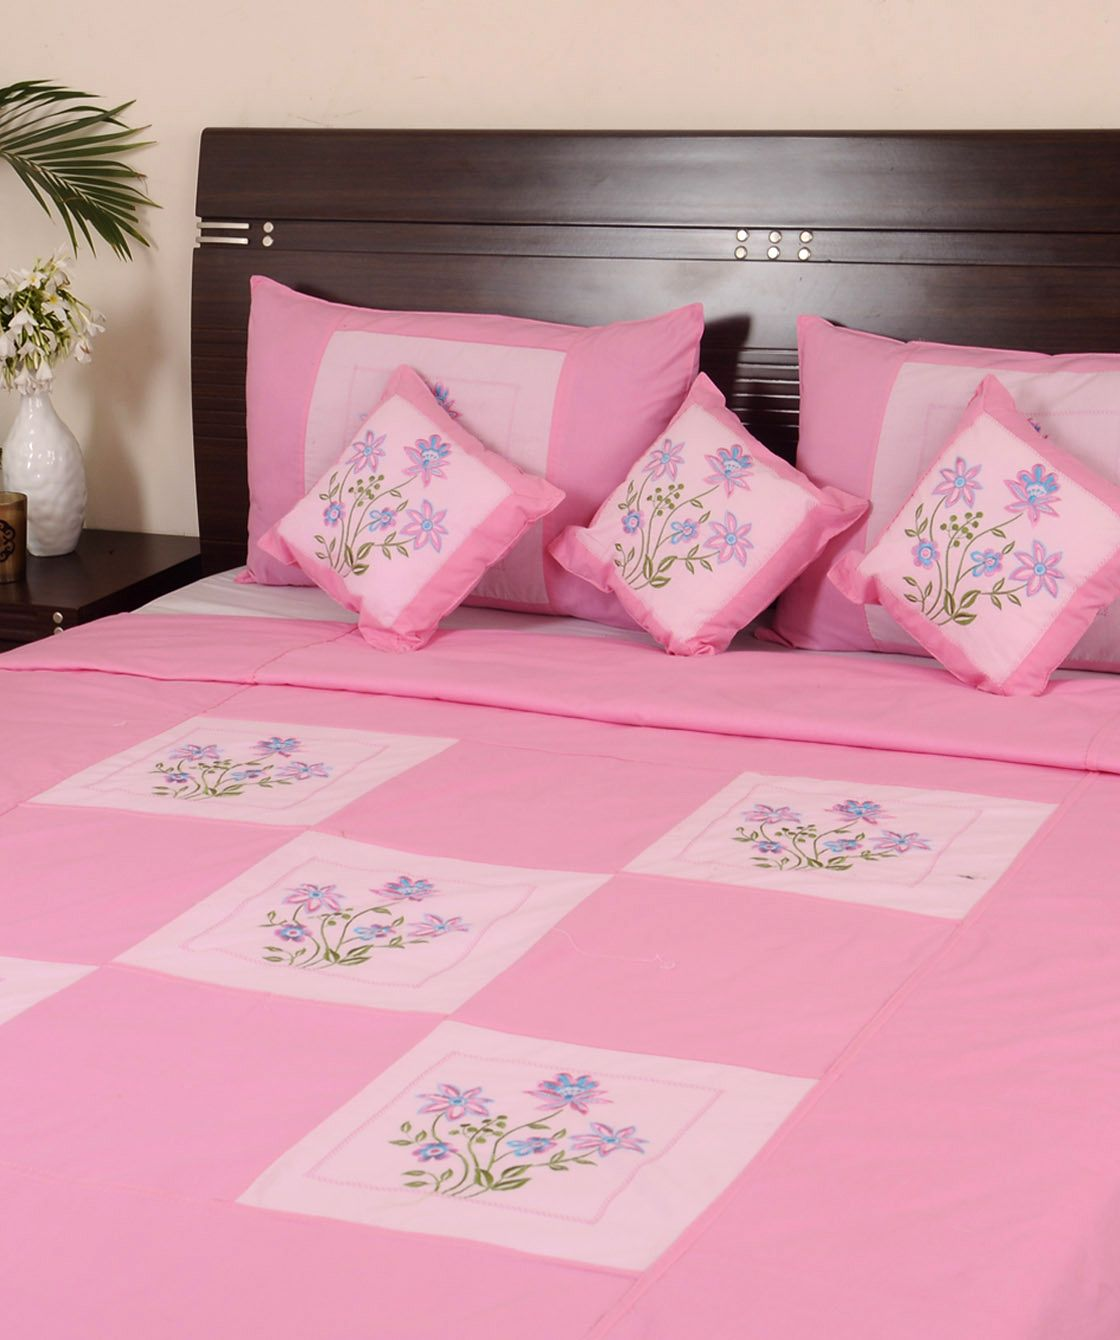 hand embroidery on bedsheets - Google Search